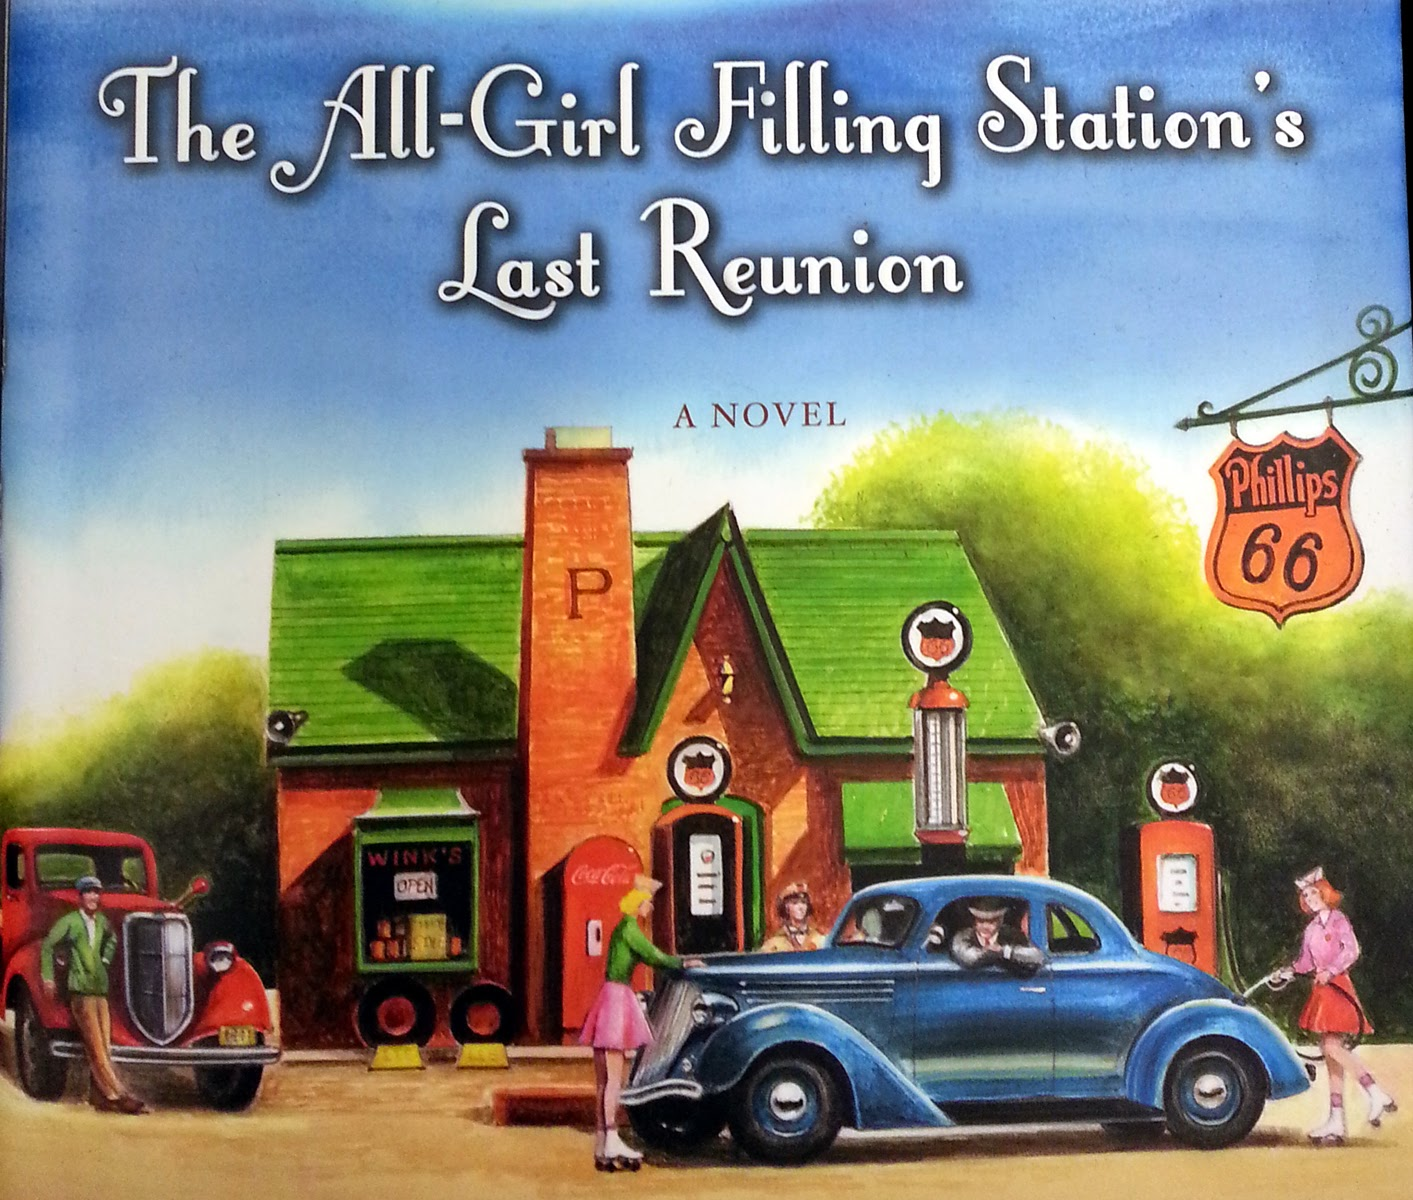 Book Discussion – The All Girl Filling Station's Last Reunion by Fannie Flagg